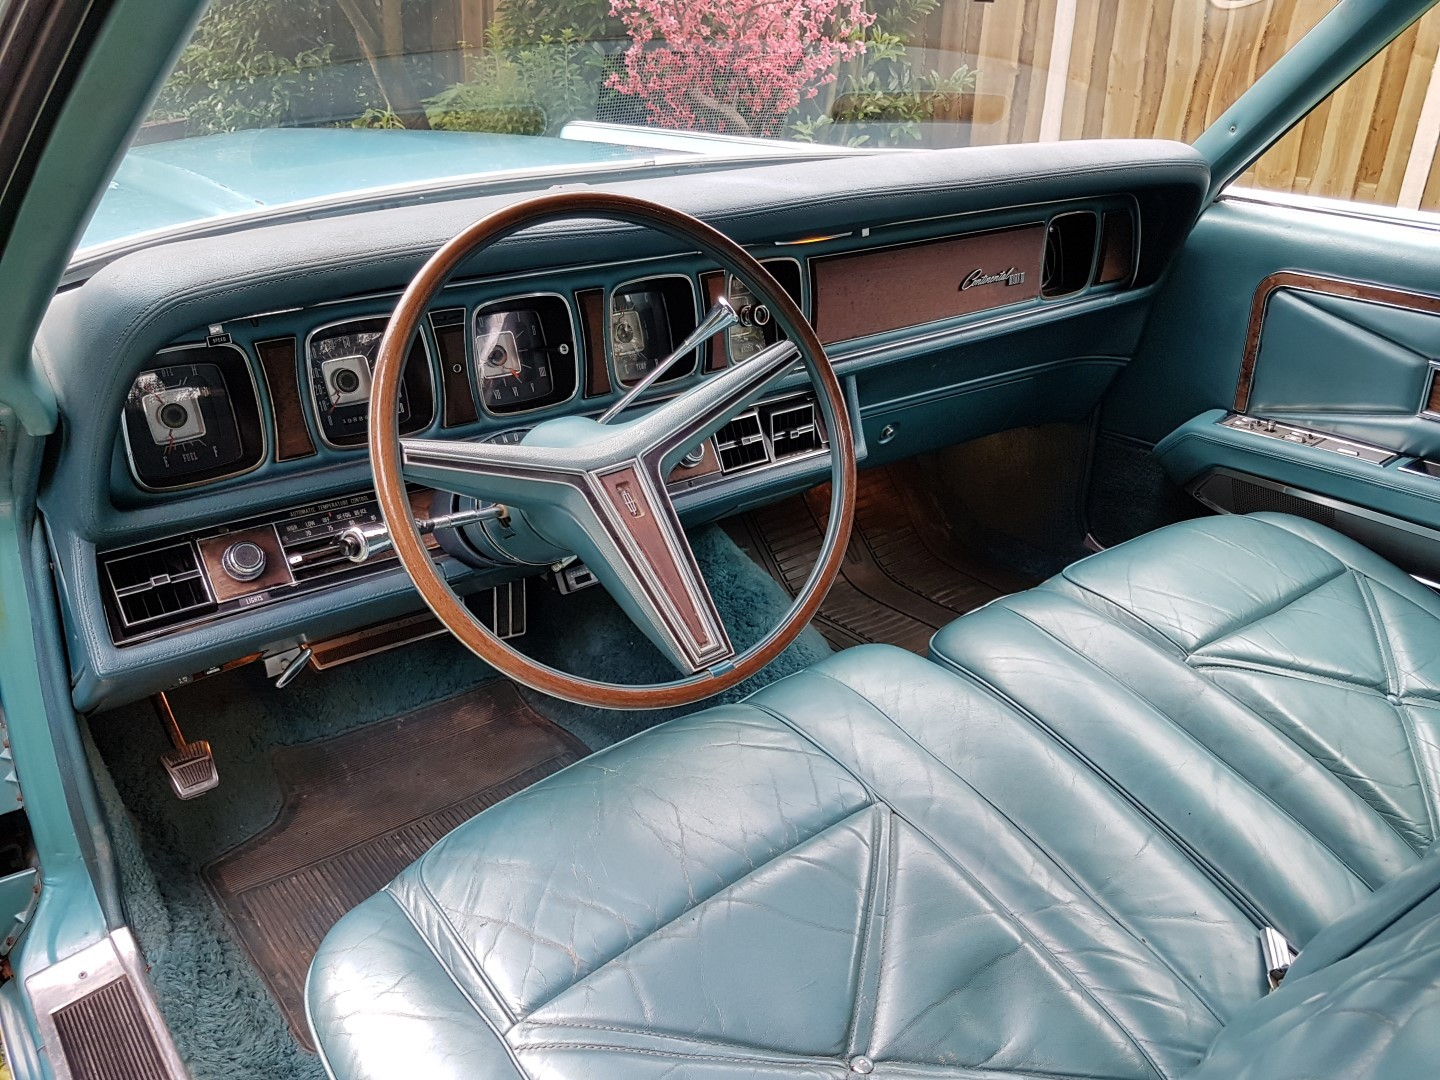 1971 Lincoln Mark III - 460ci (11)